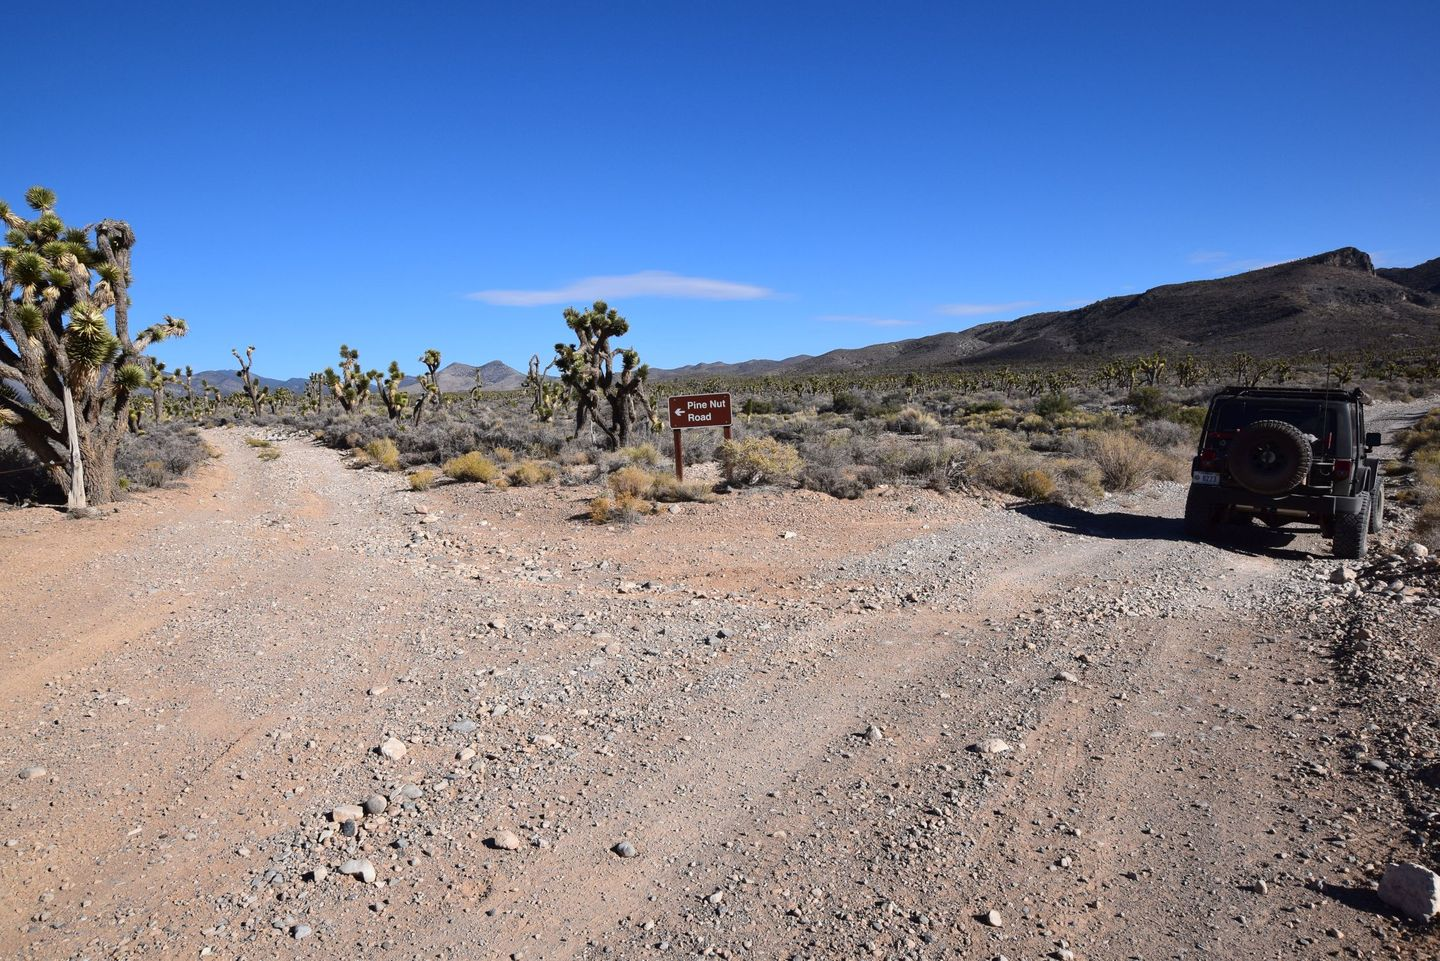 Pine Nut Road - Waypoint 1: Trailhead